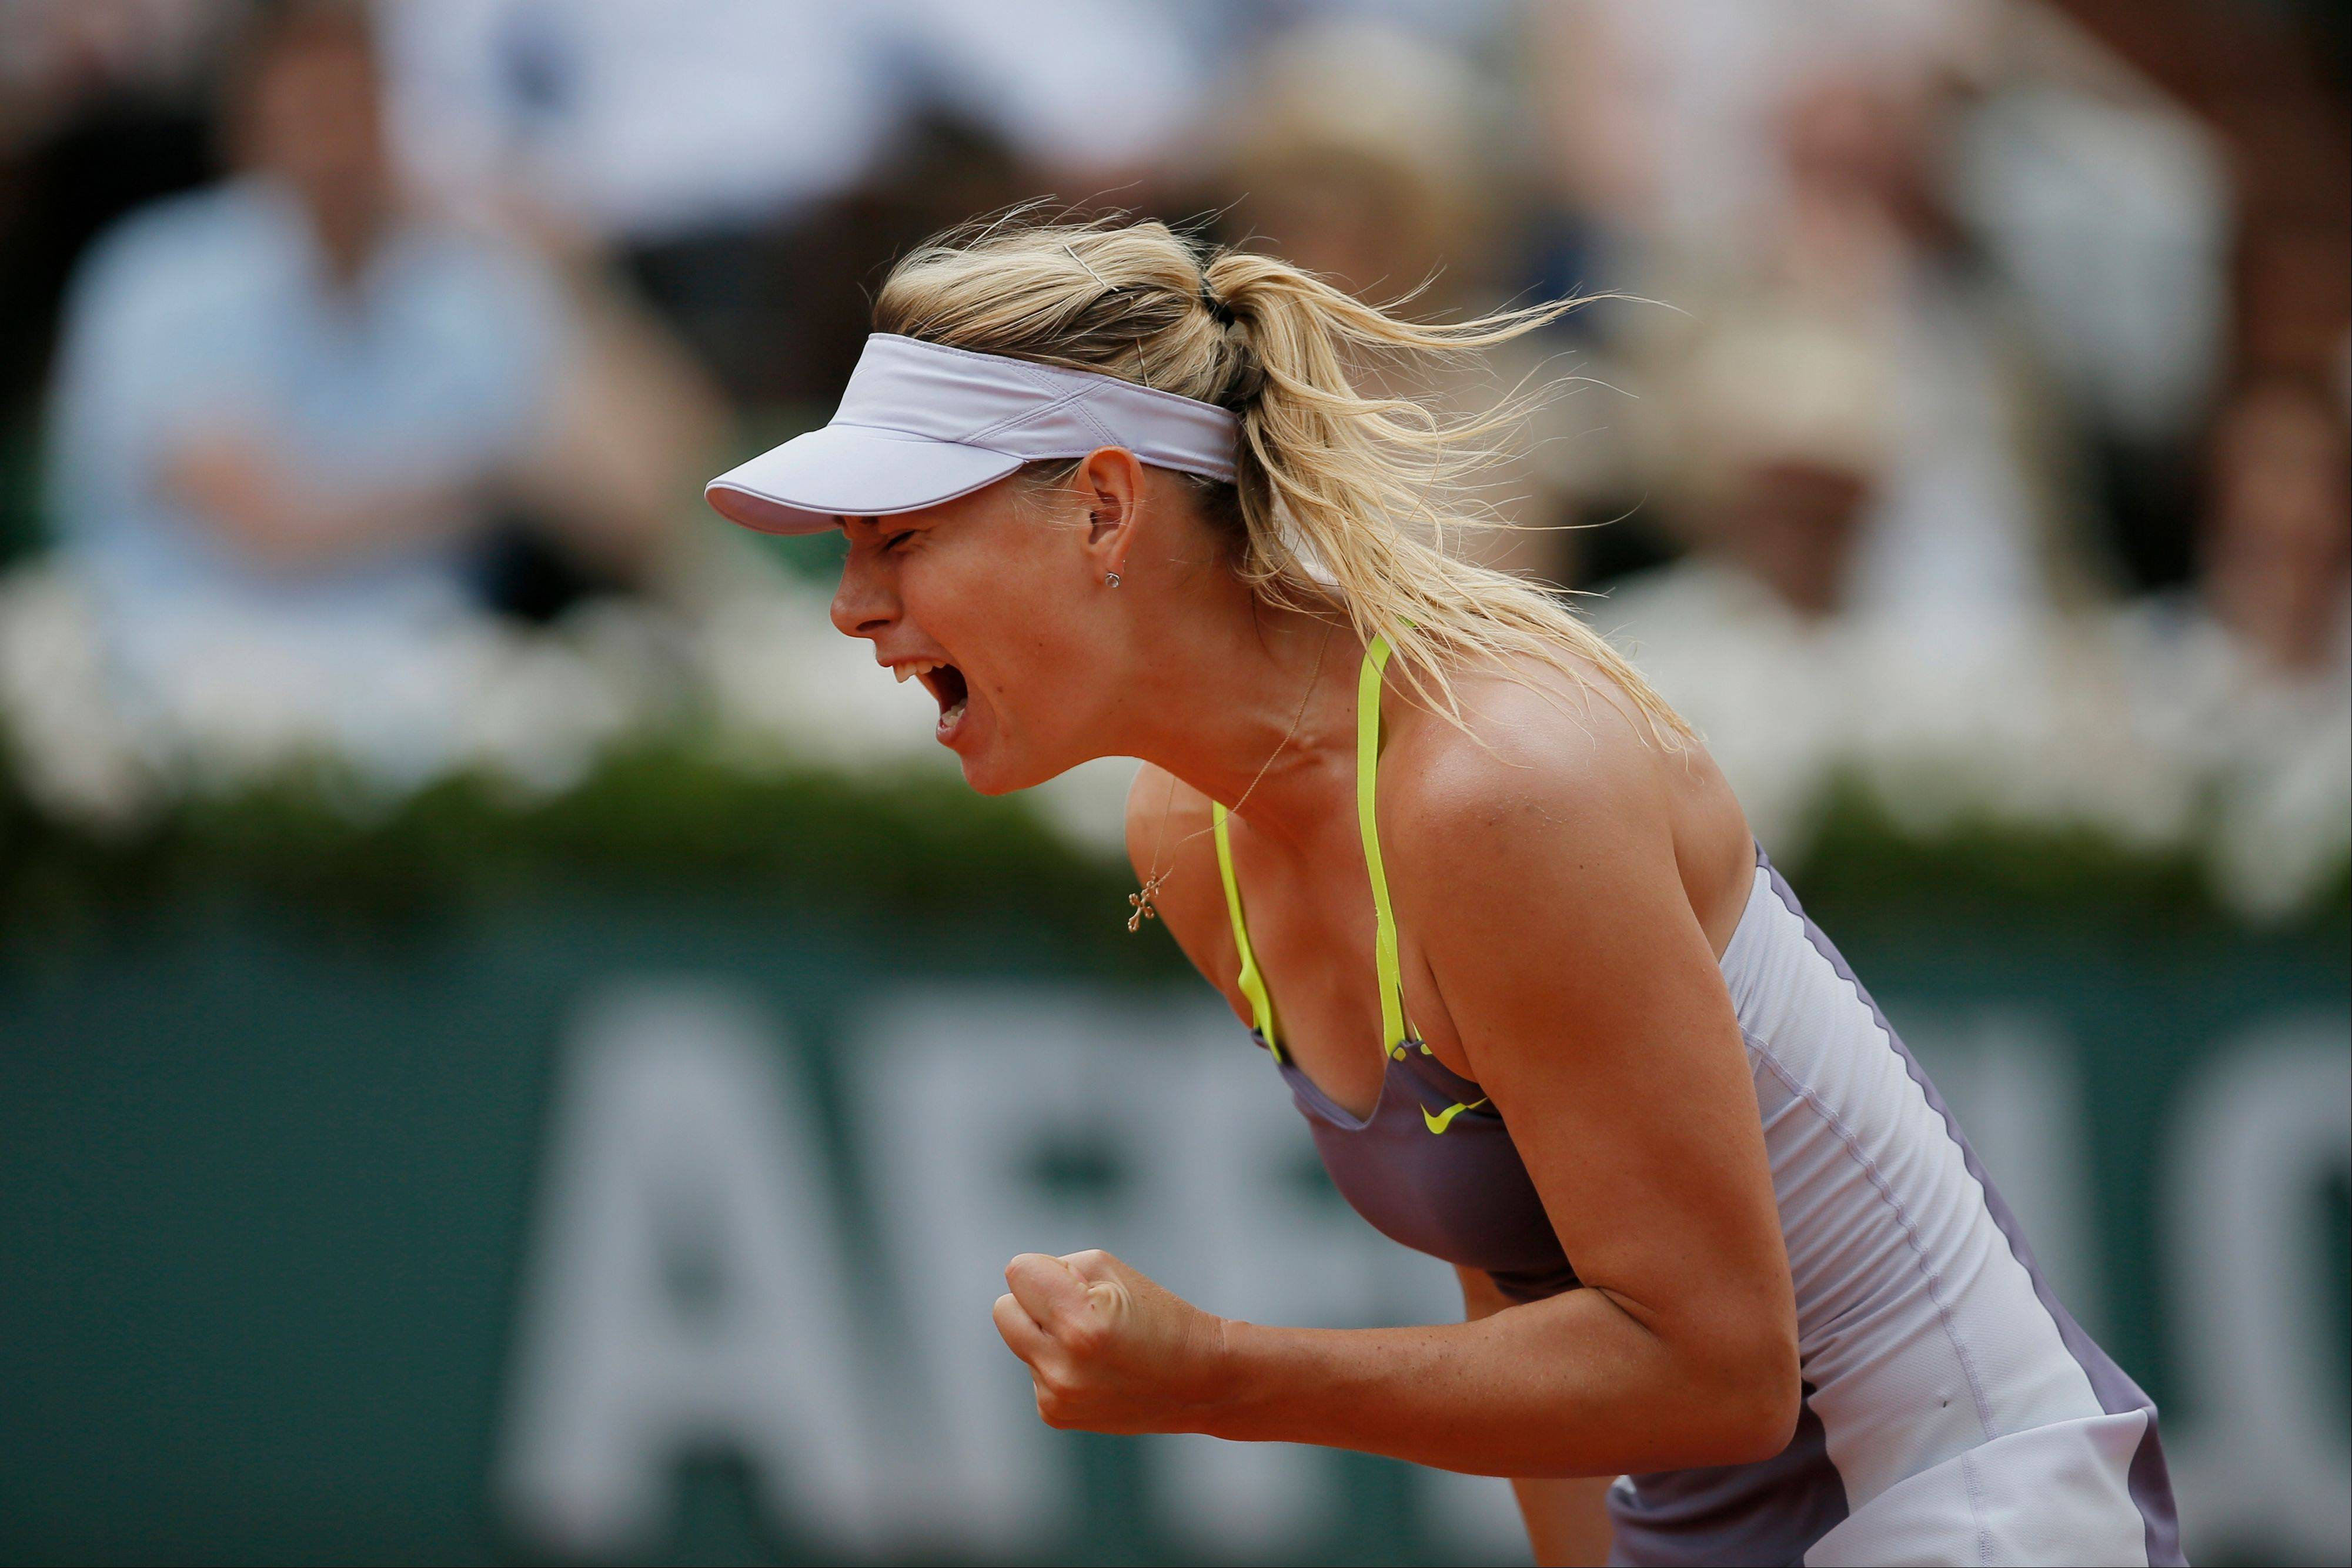 Russia's Maria Sharapova clenches her fist Thursday after scoring against Victoria Azarenka, defeating Azarenka in three sets 6-1, 2-6, 6-4, in their semifinal match at the French Open tennis tournament at Roland Garros stadium in Paris.